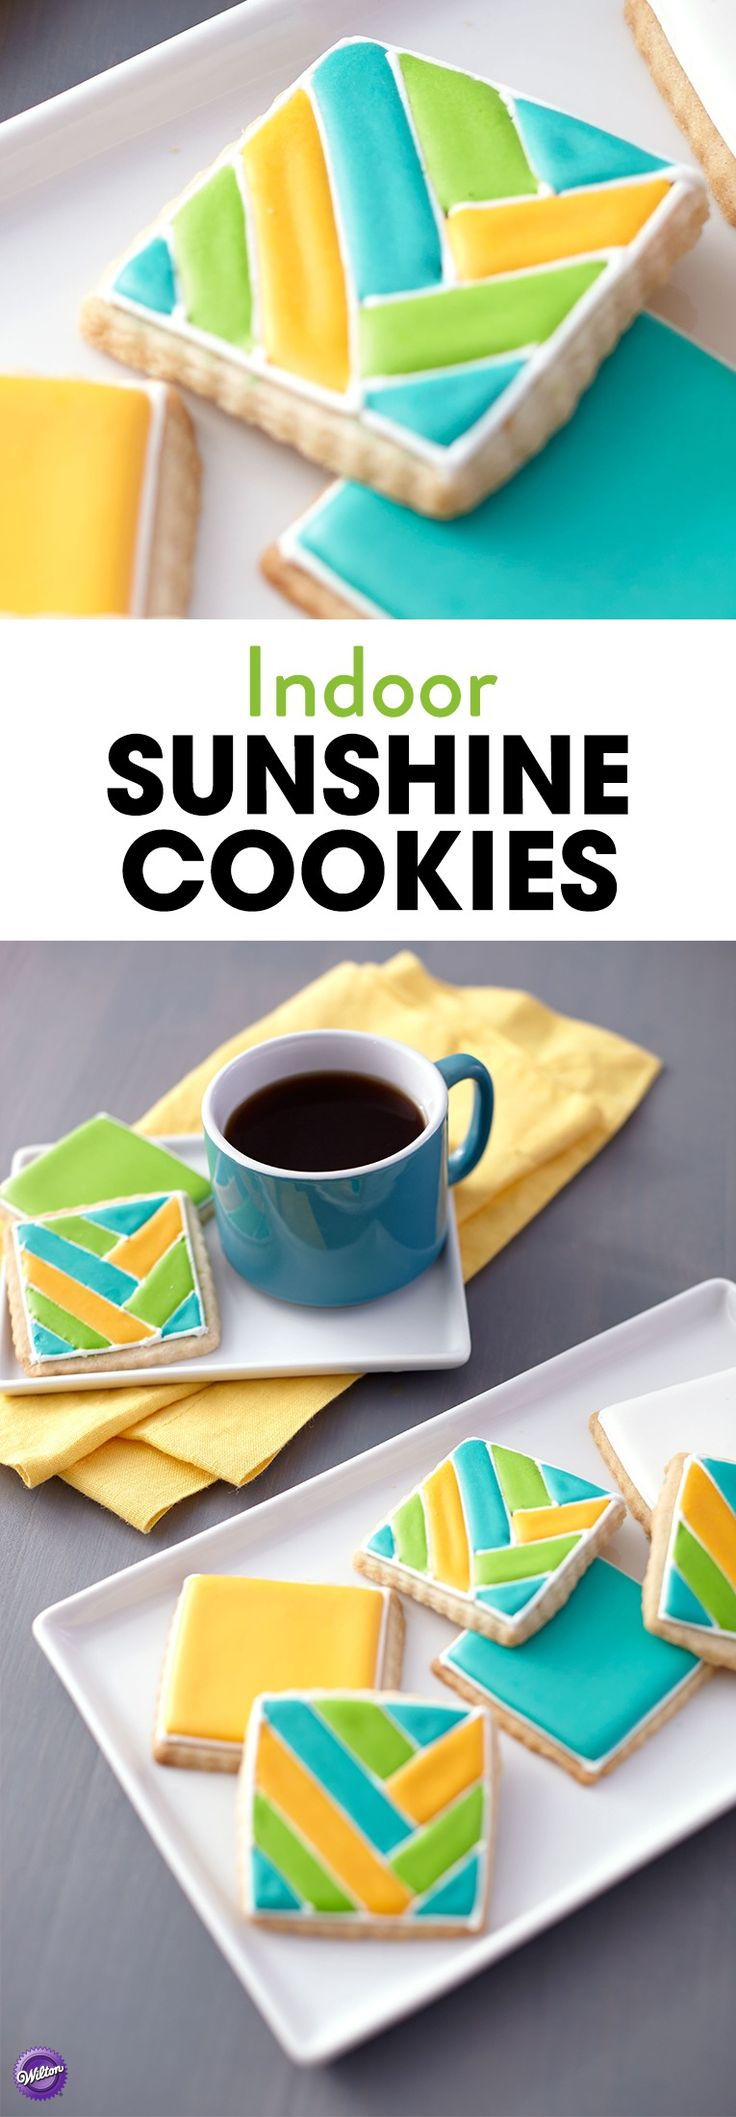 Indoor Sunshine Color Flow Cookies - Let the color and light inside with these bright and shiny Color Flow cookies. Tint all of the sunny shades using the Color Right Performance Color System. These cookies make the perfect sweet treats to serve at your summer gatherings.